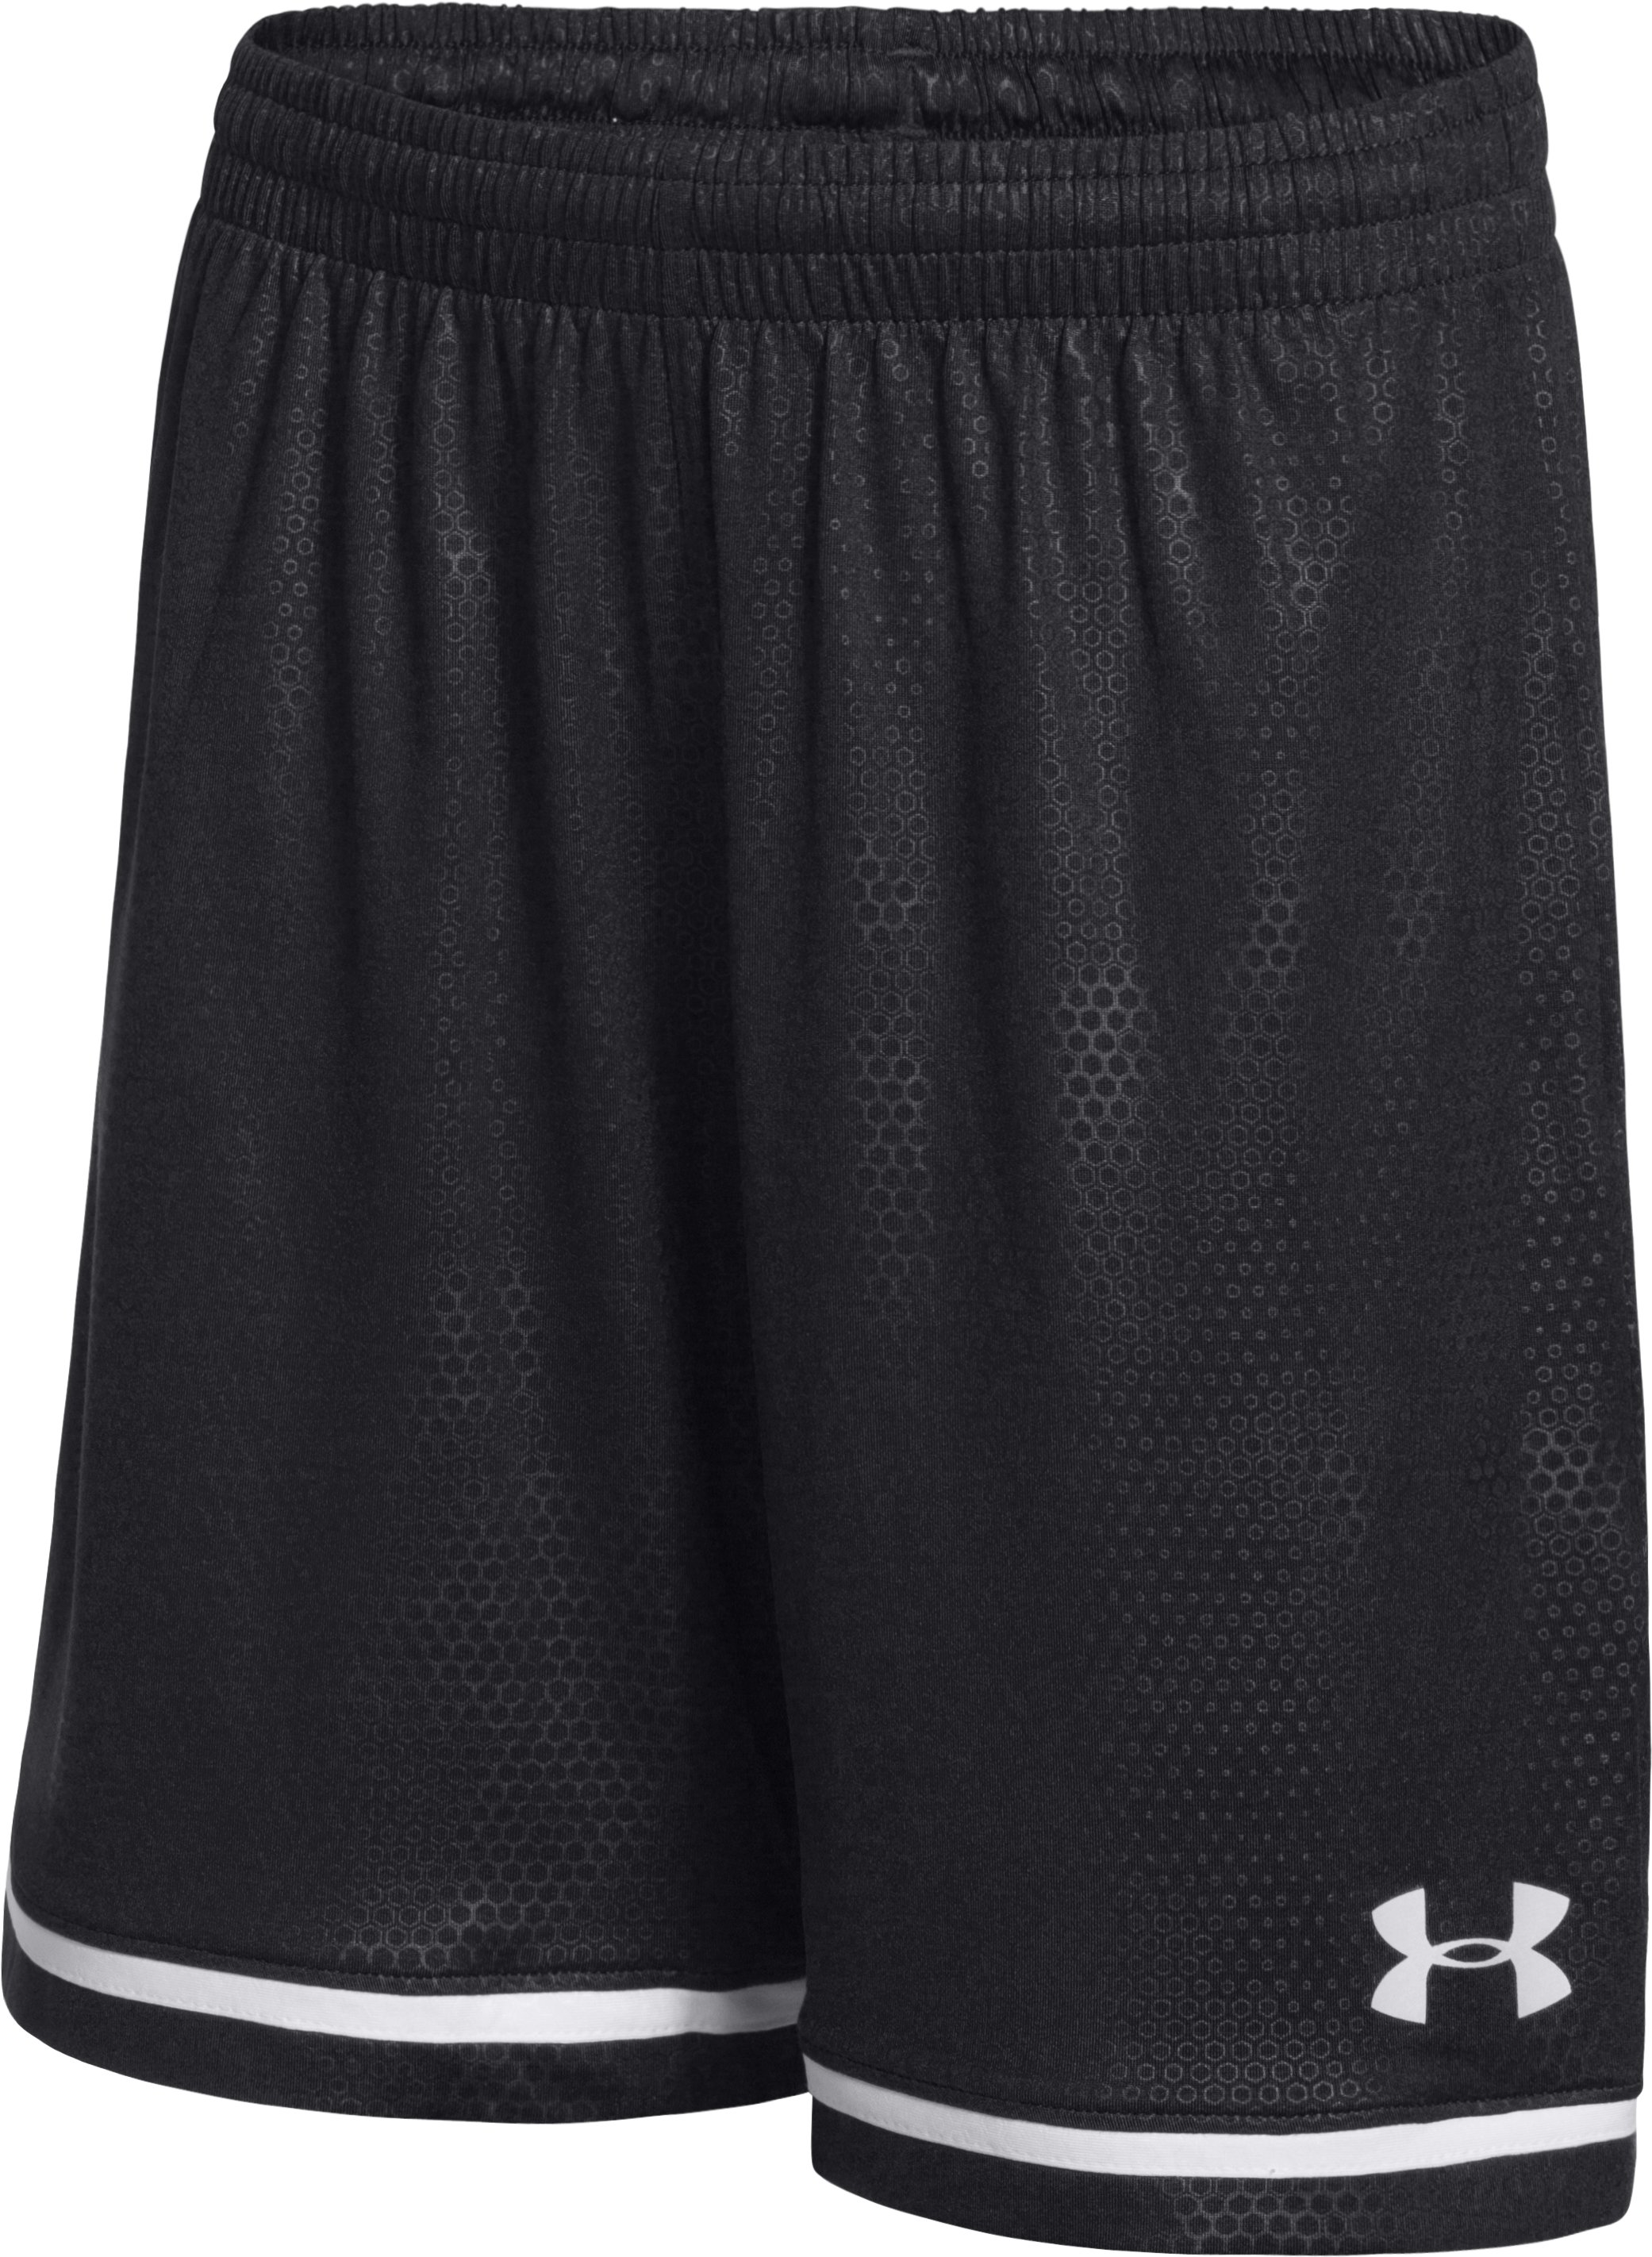 Boys' UA Highlight Soccer Shorts, Black